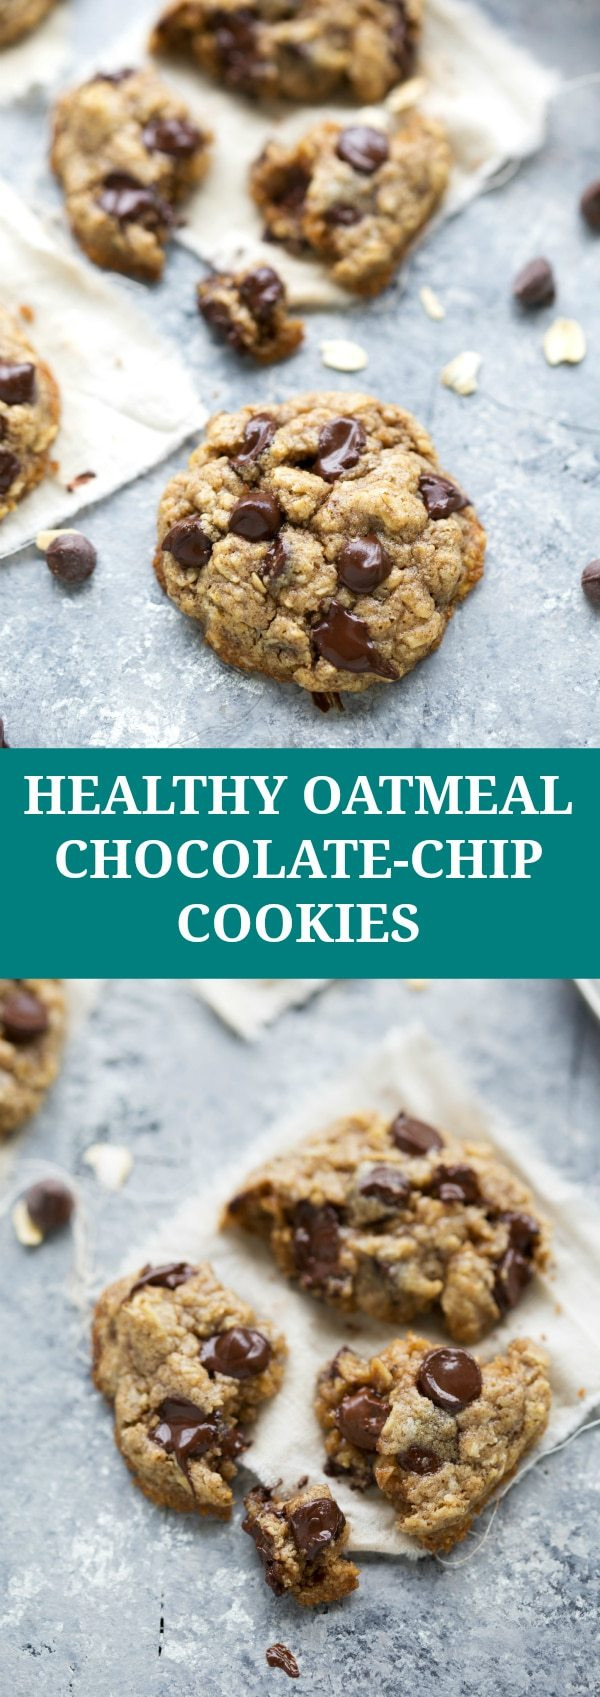 Healthy Oatmeal Coconut Chocolate Chip Cookies  The BEST healthy oatmeal chocolate chip cookies Chelsea